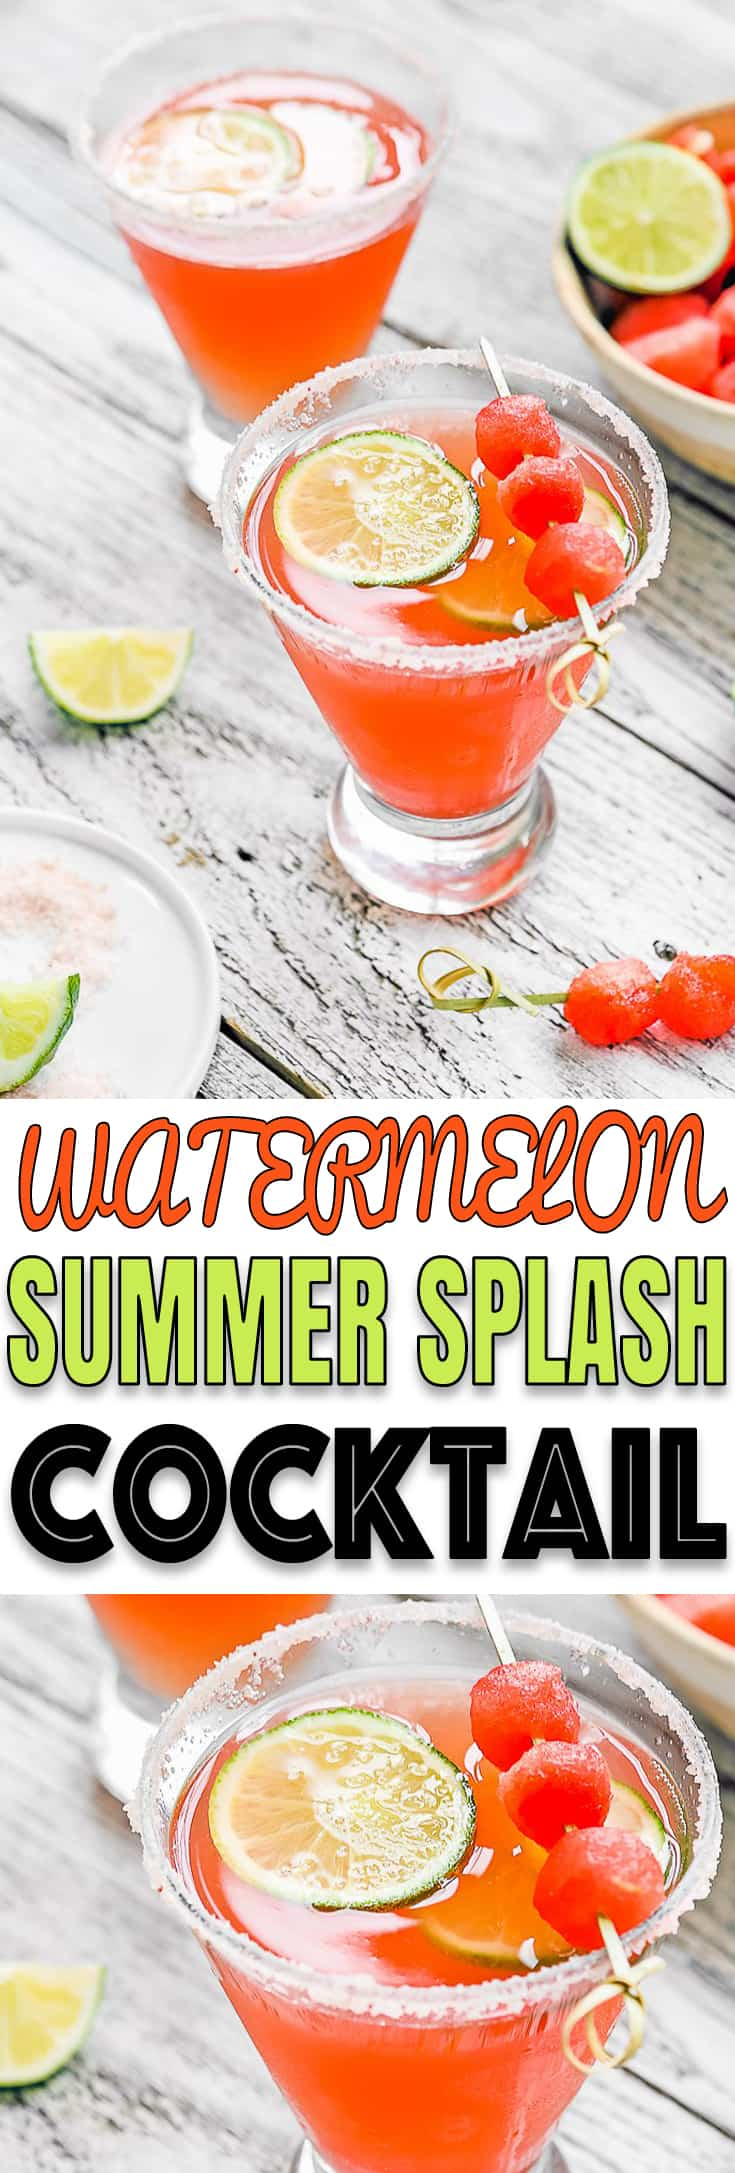 Cool down this Summer with this Watermelon Summer Splash Cocktail!! Fresh Watermelon, Tequila, and Moscato shaken to pure perfection. THE BEST flavor combo, so refreshing! http://mommyshomecooking.com